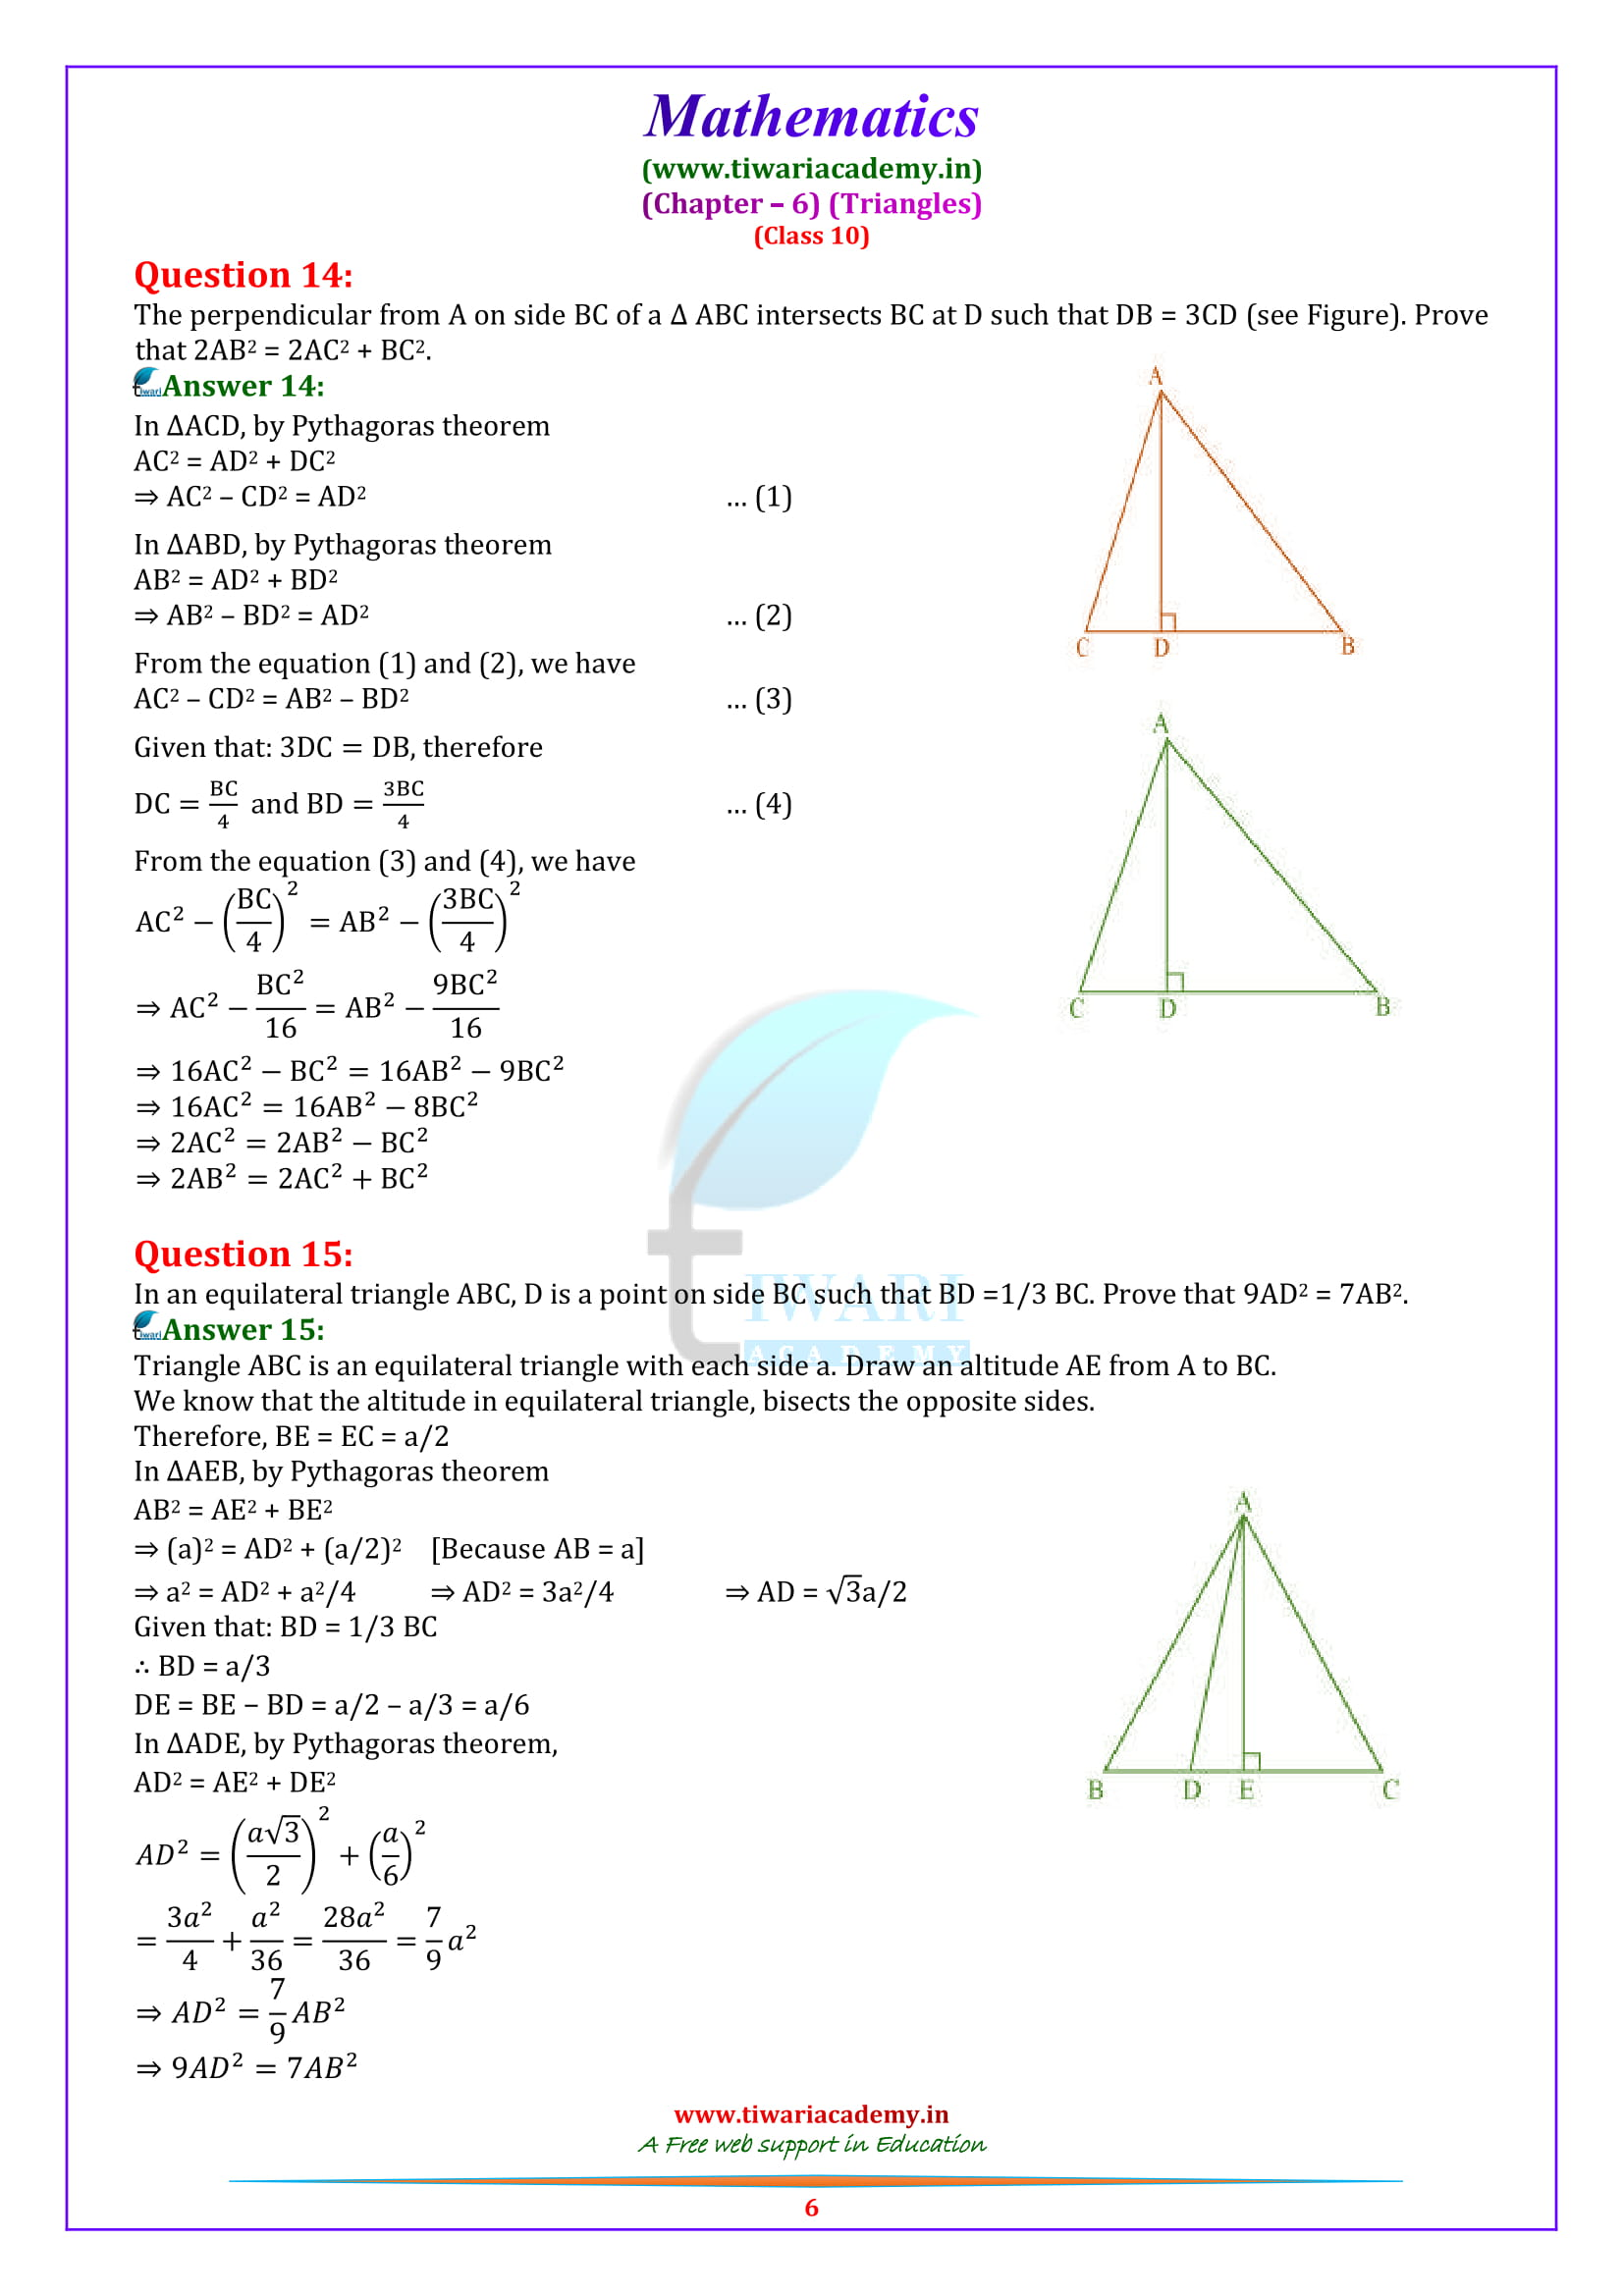 10 Maths Exercise 6.5 solutions in pdf download